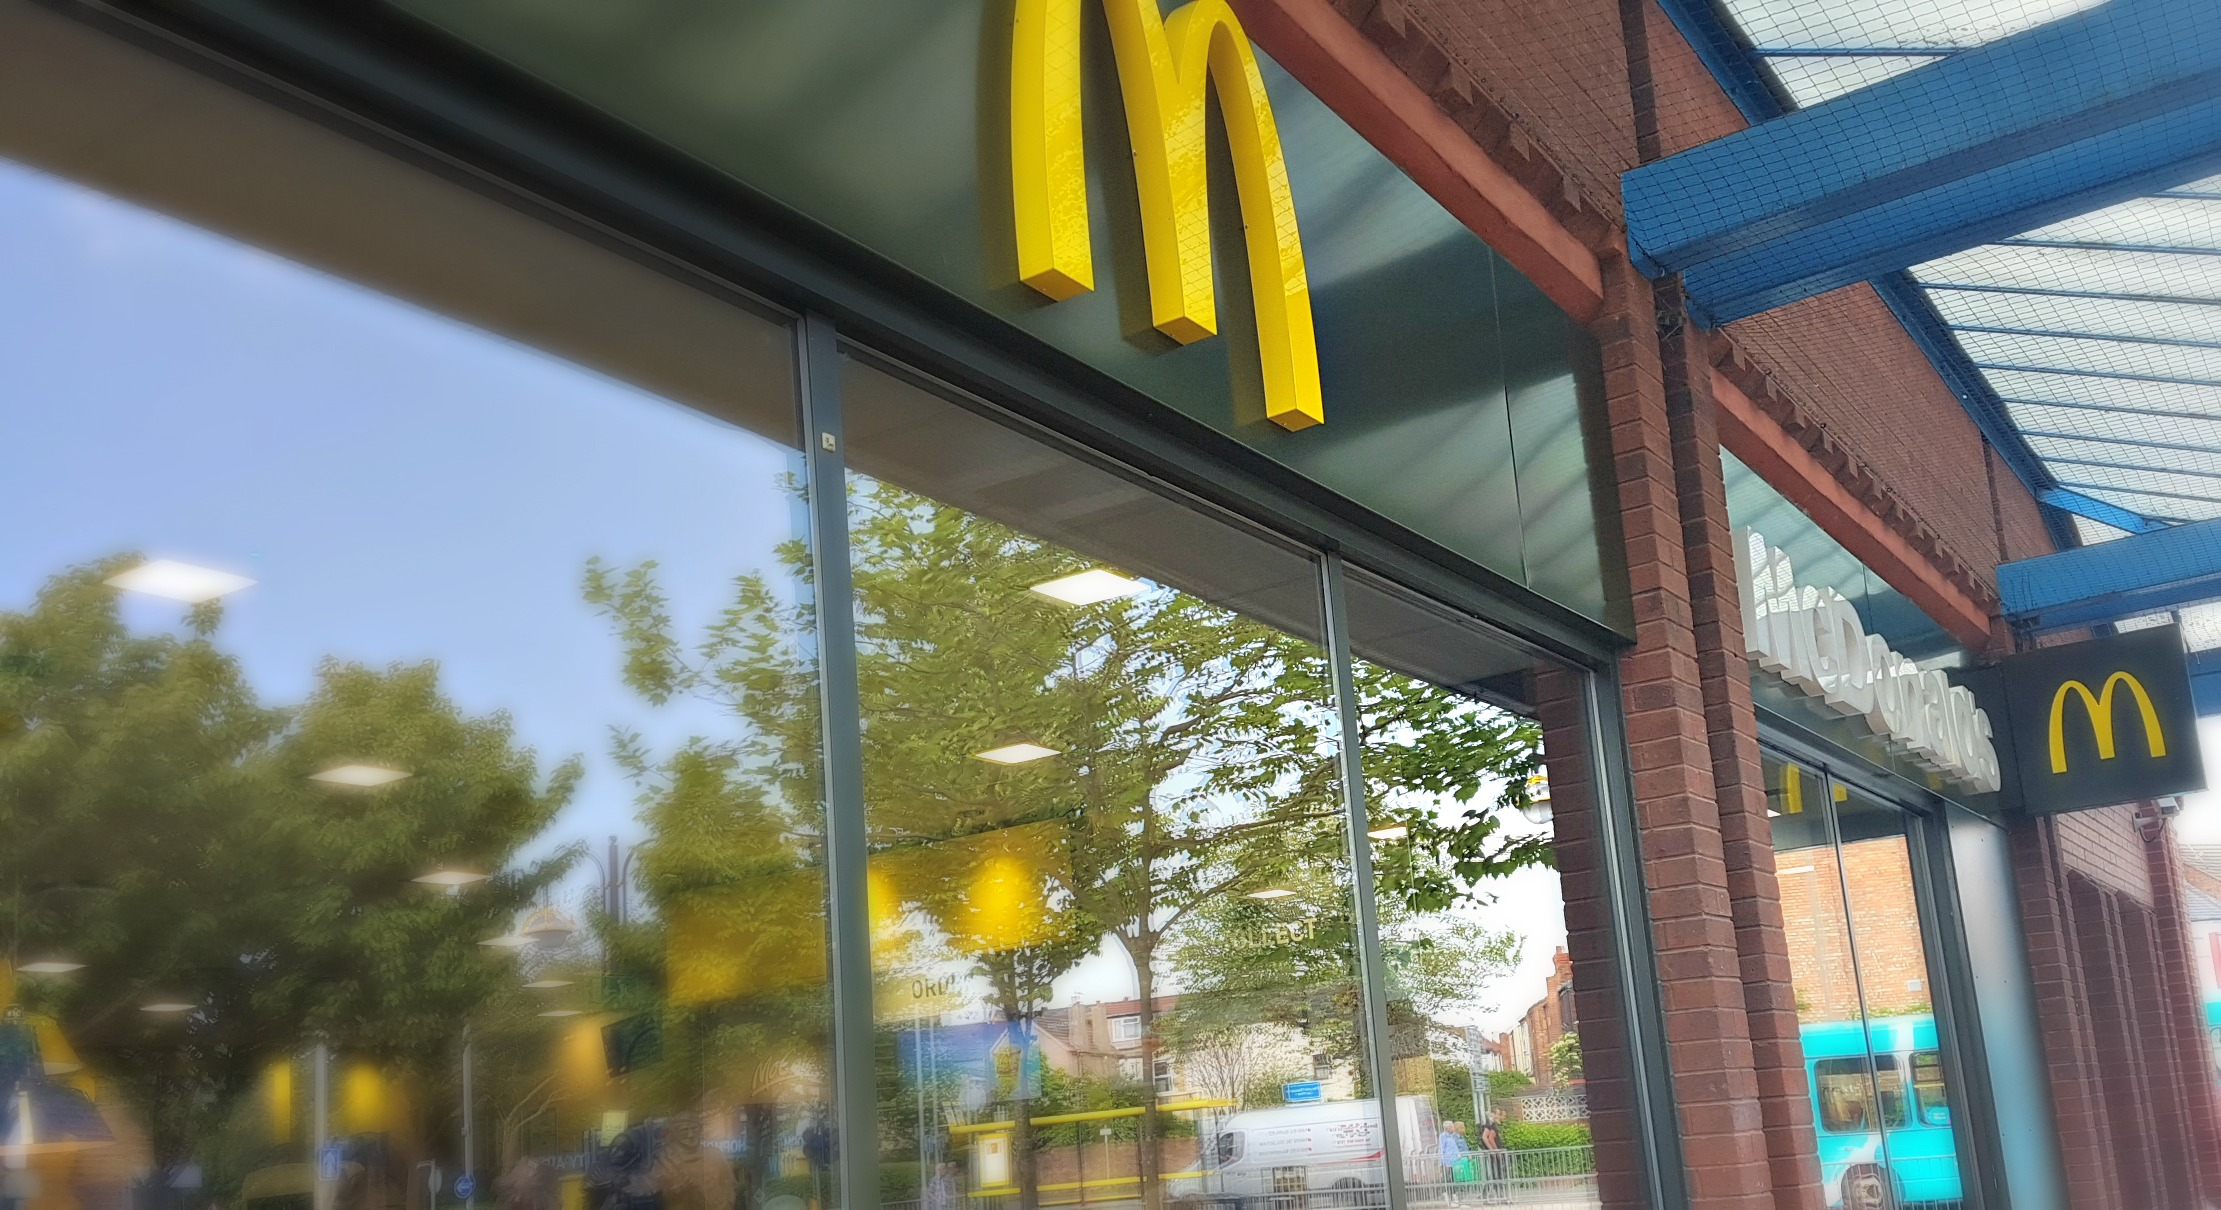 outside image of a mcdonald's store